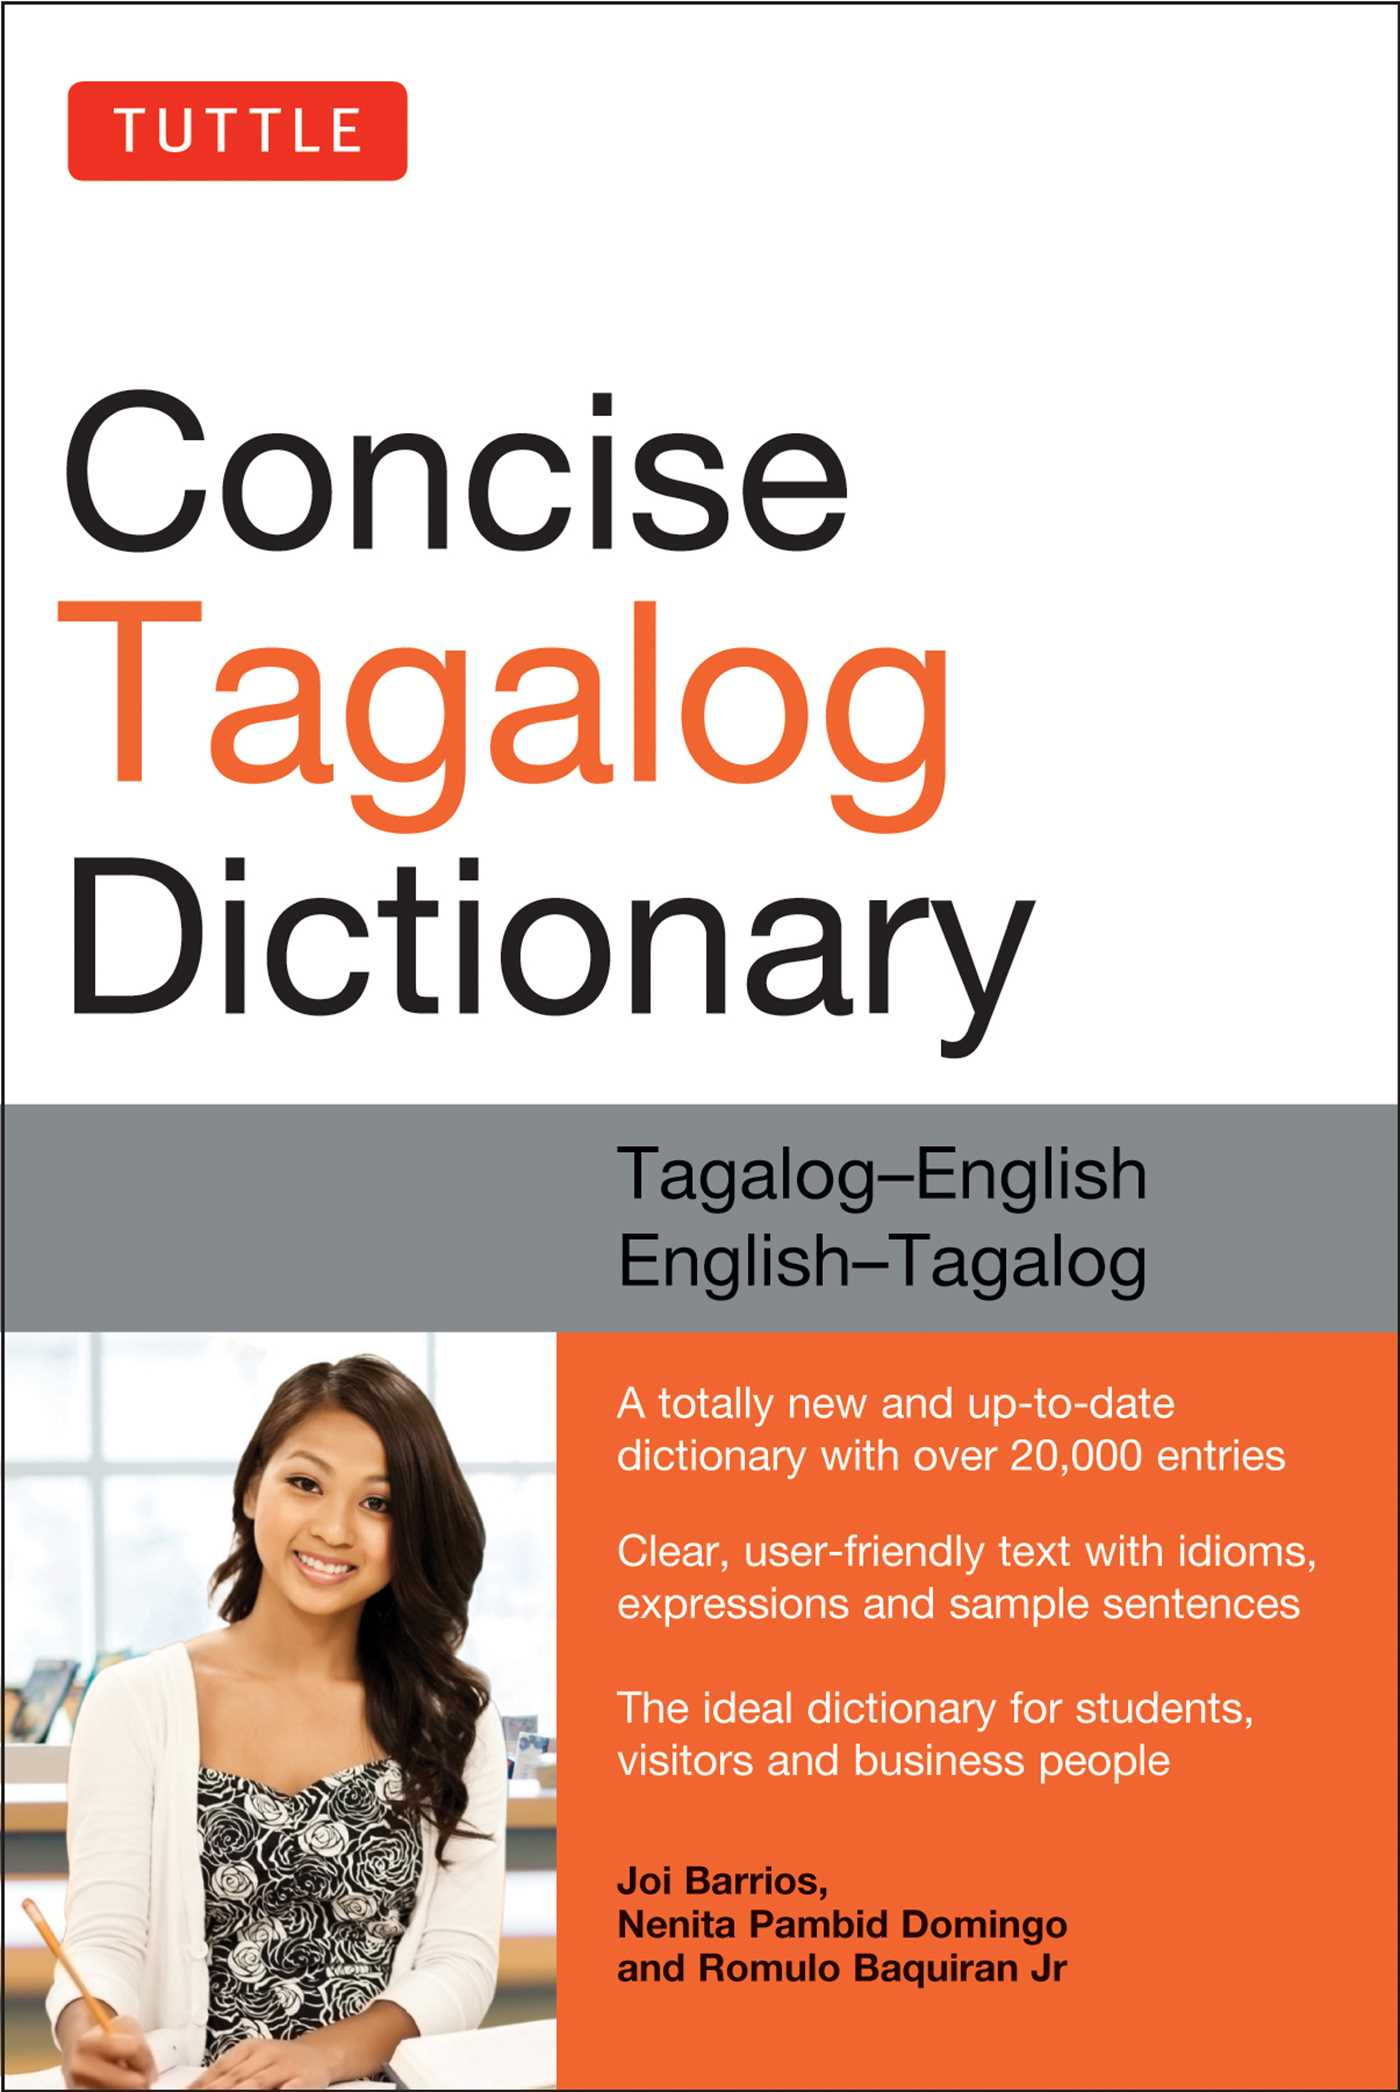 Tuttle-concise-tagalog-dictionary-9780804839143_hr